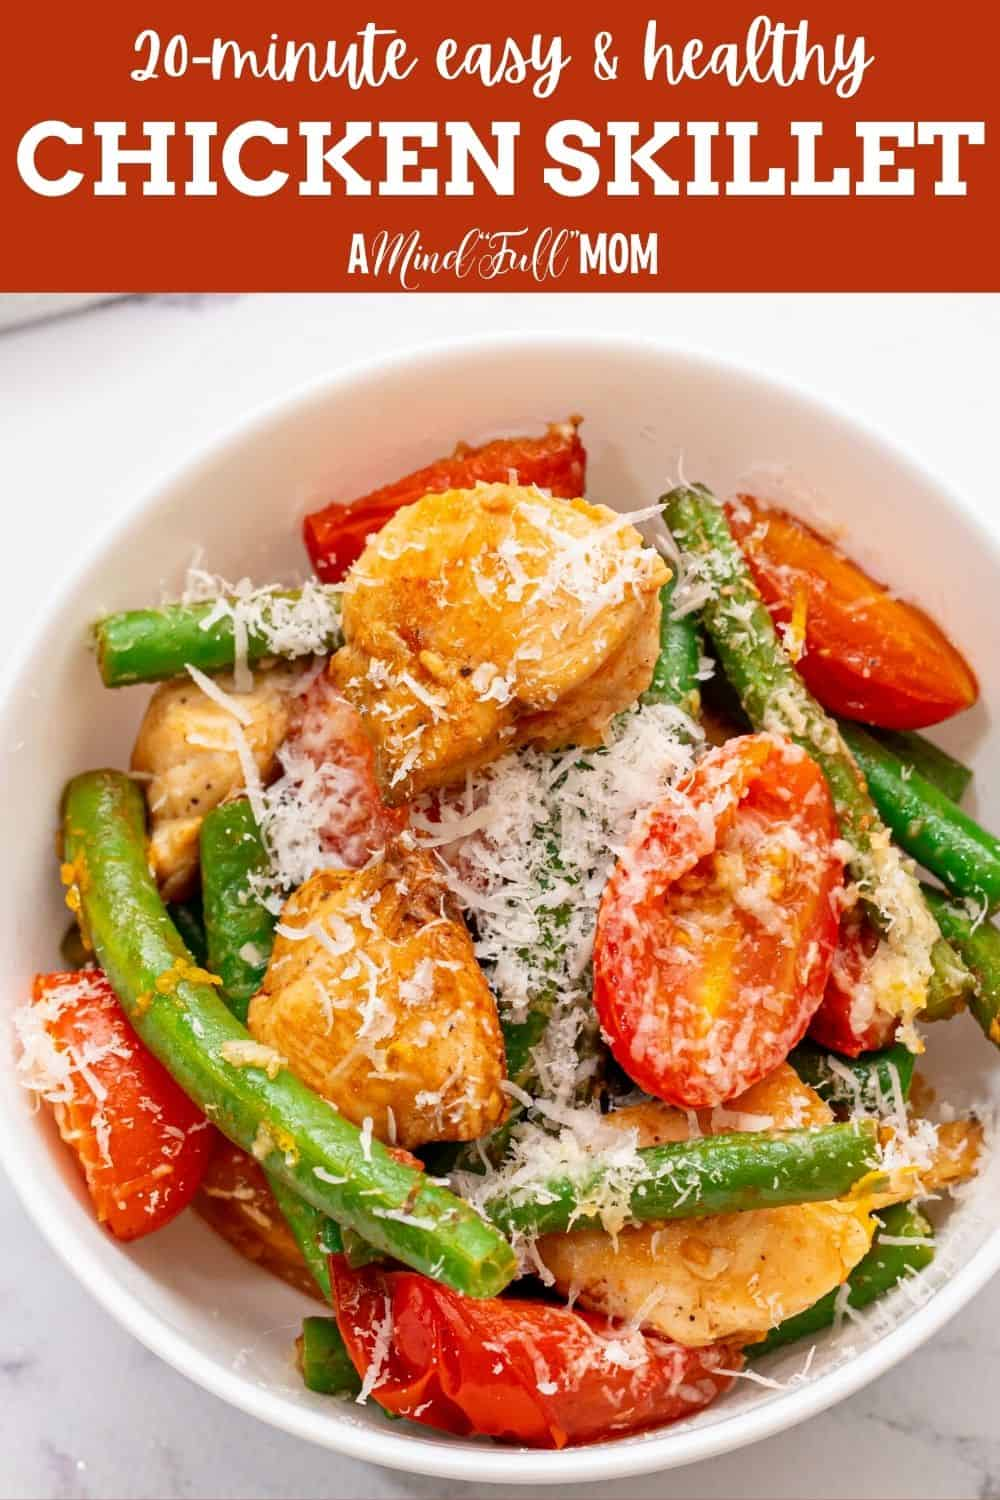 Made with tender chicken breasts, crisp-tender green beans, sweet tomatoes, and a lemon-garlic pan sauce, this Skillet Chicken is a healthy, yet easy meal.